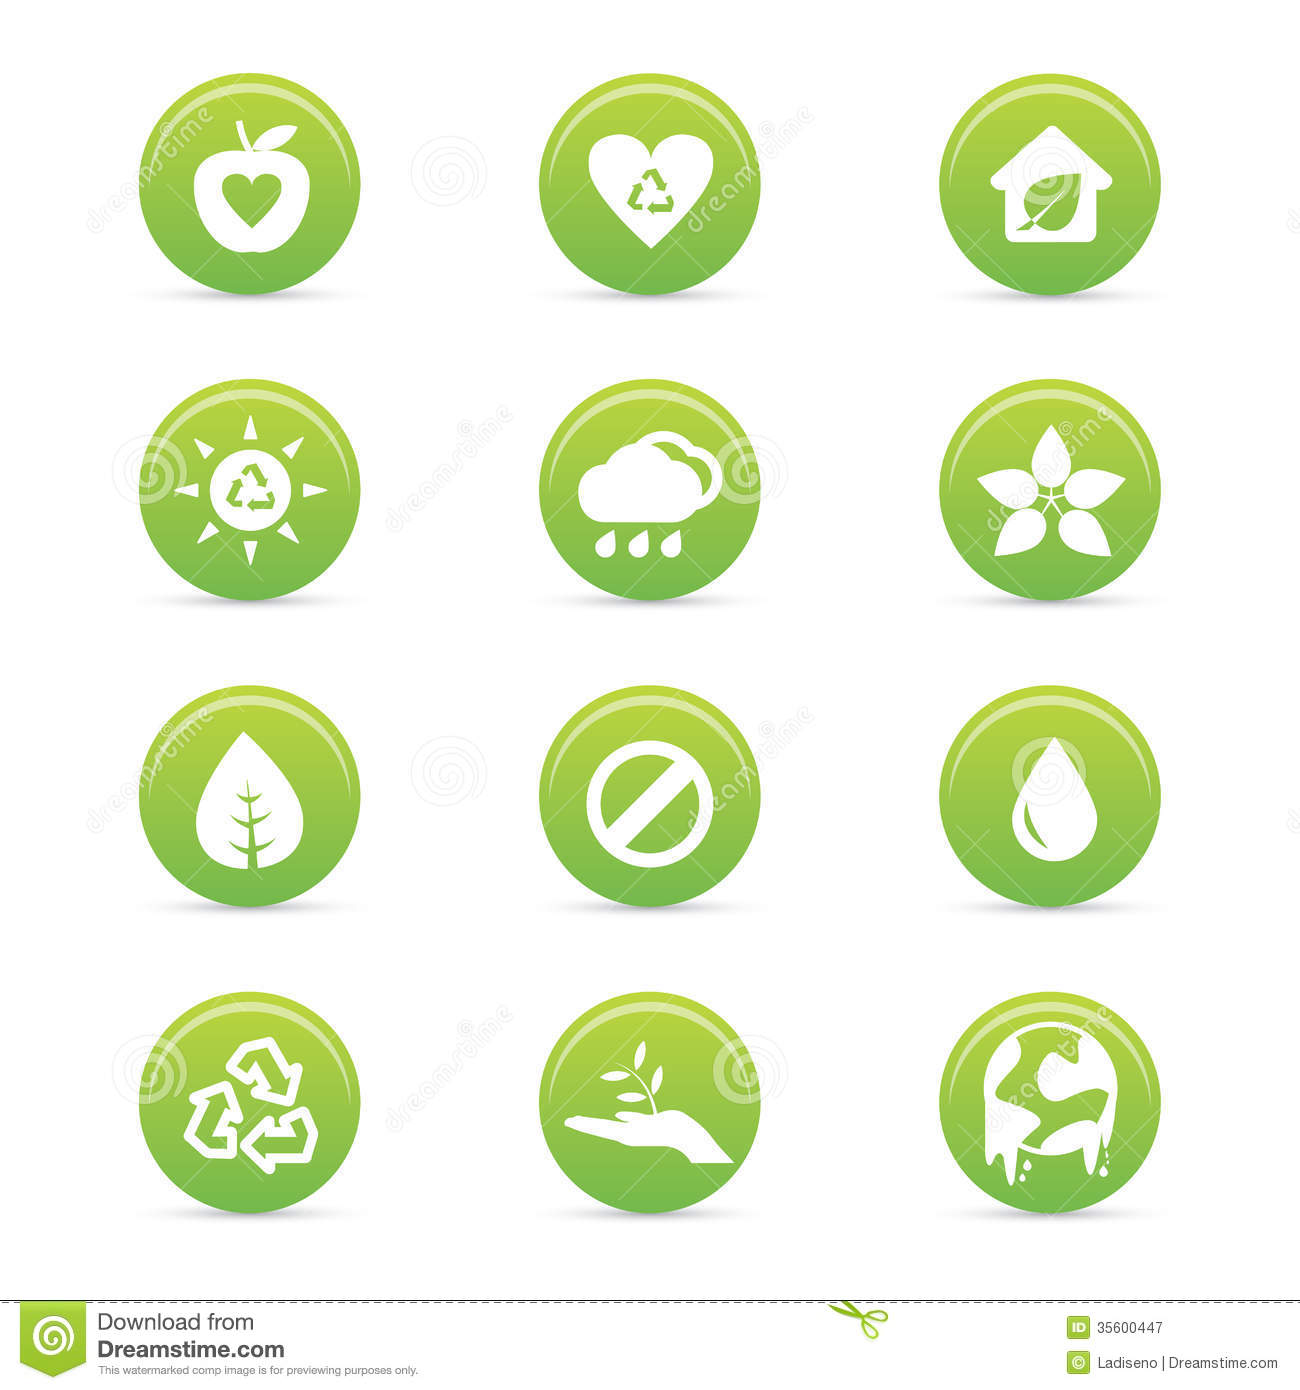 Sustainability Icons Royalty Free Stock Photography. Technical Schools In Tallahassee Fl. Trade Natural Gas Futures Rehabs In Illinois. Online Public Universities Film Press Release. Internal Medicine Personal Statement. Graduate Programs In Chicago. Best Life Insurance Policy In India. Clean And Adjust Rear Brakes. Wharton Junior College Culinary Schools In Fl